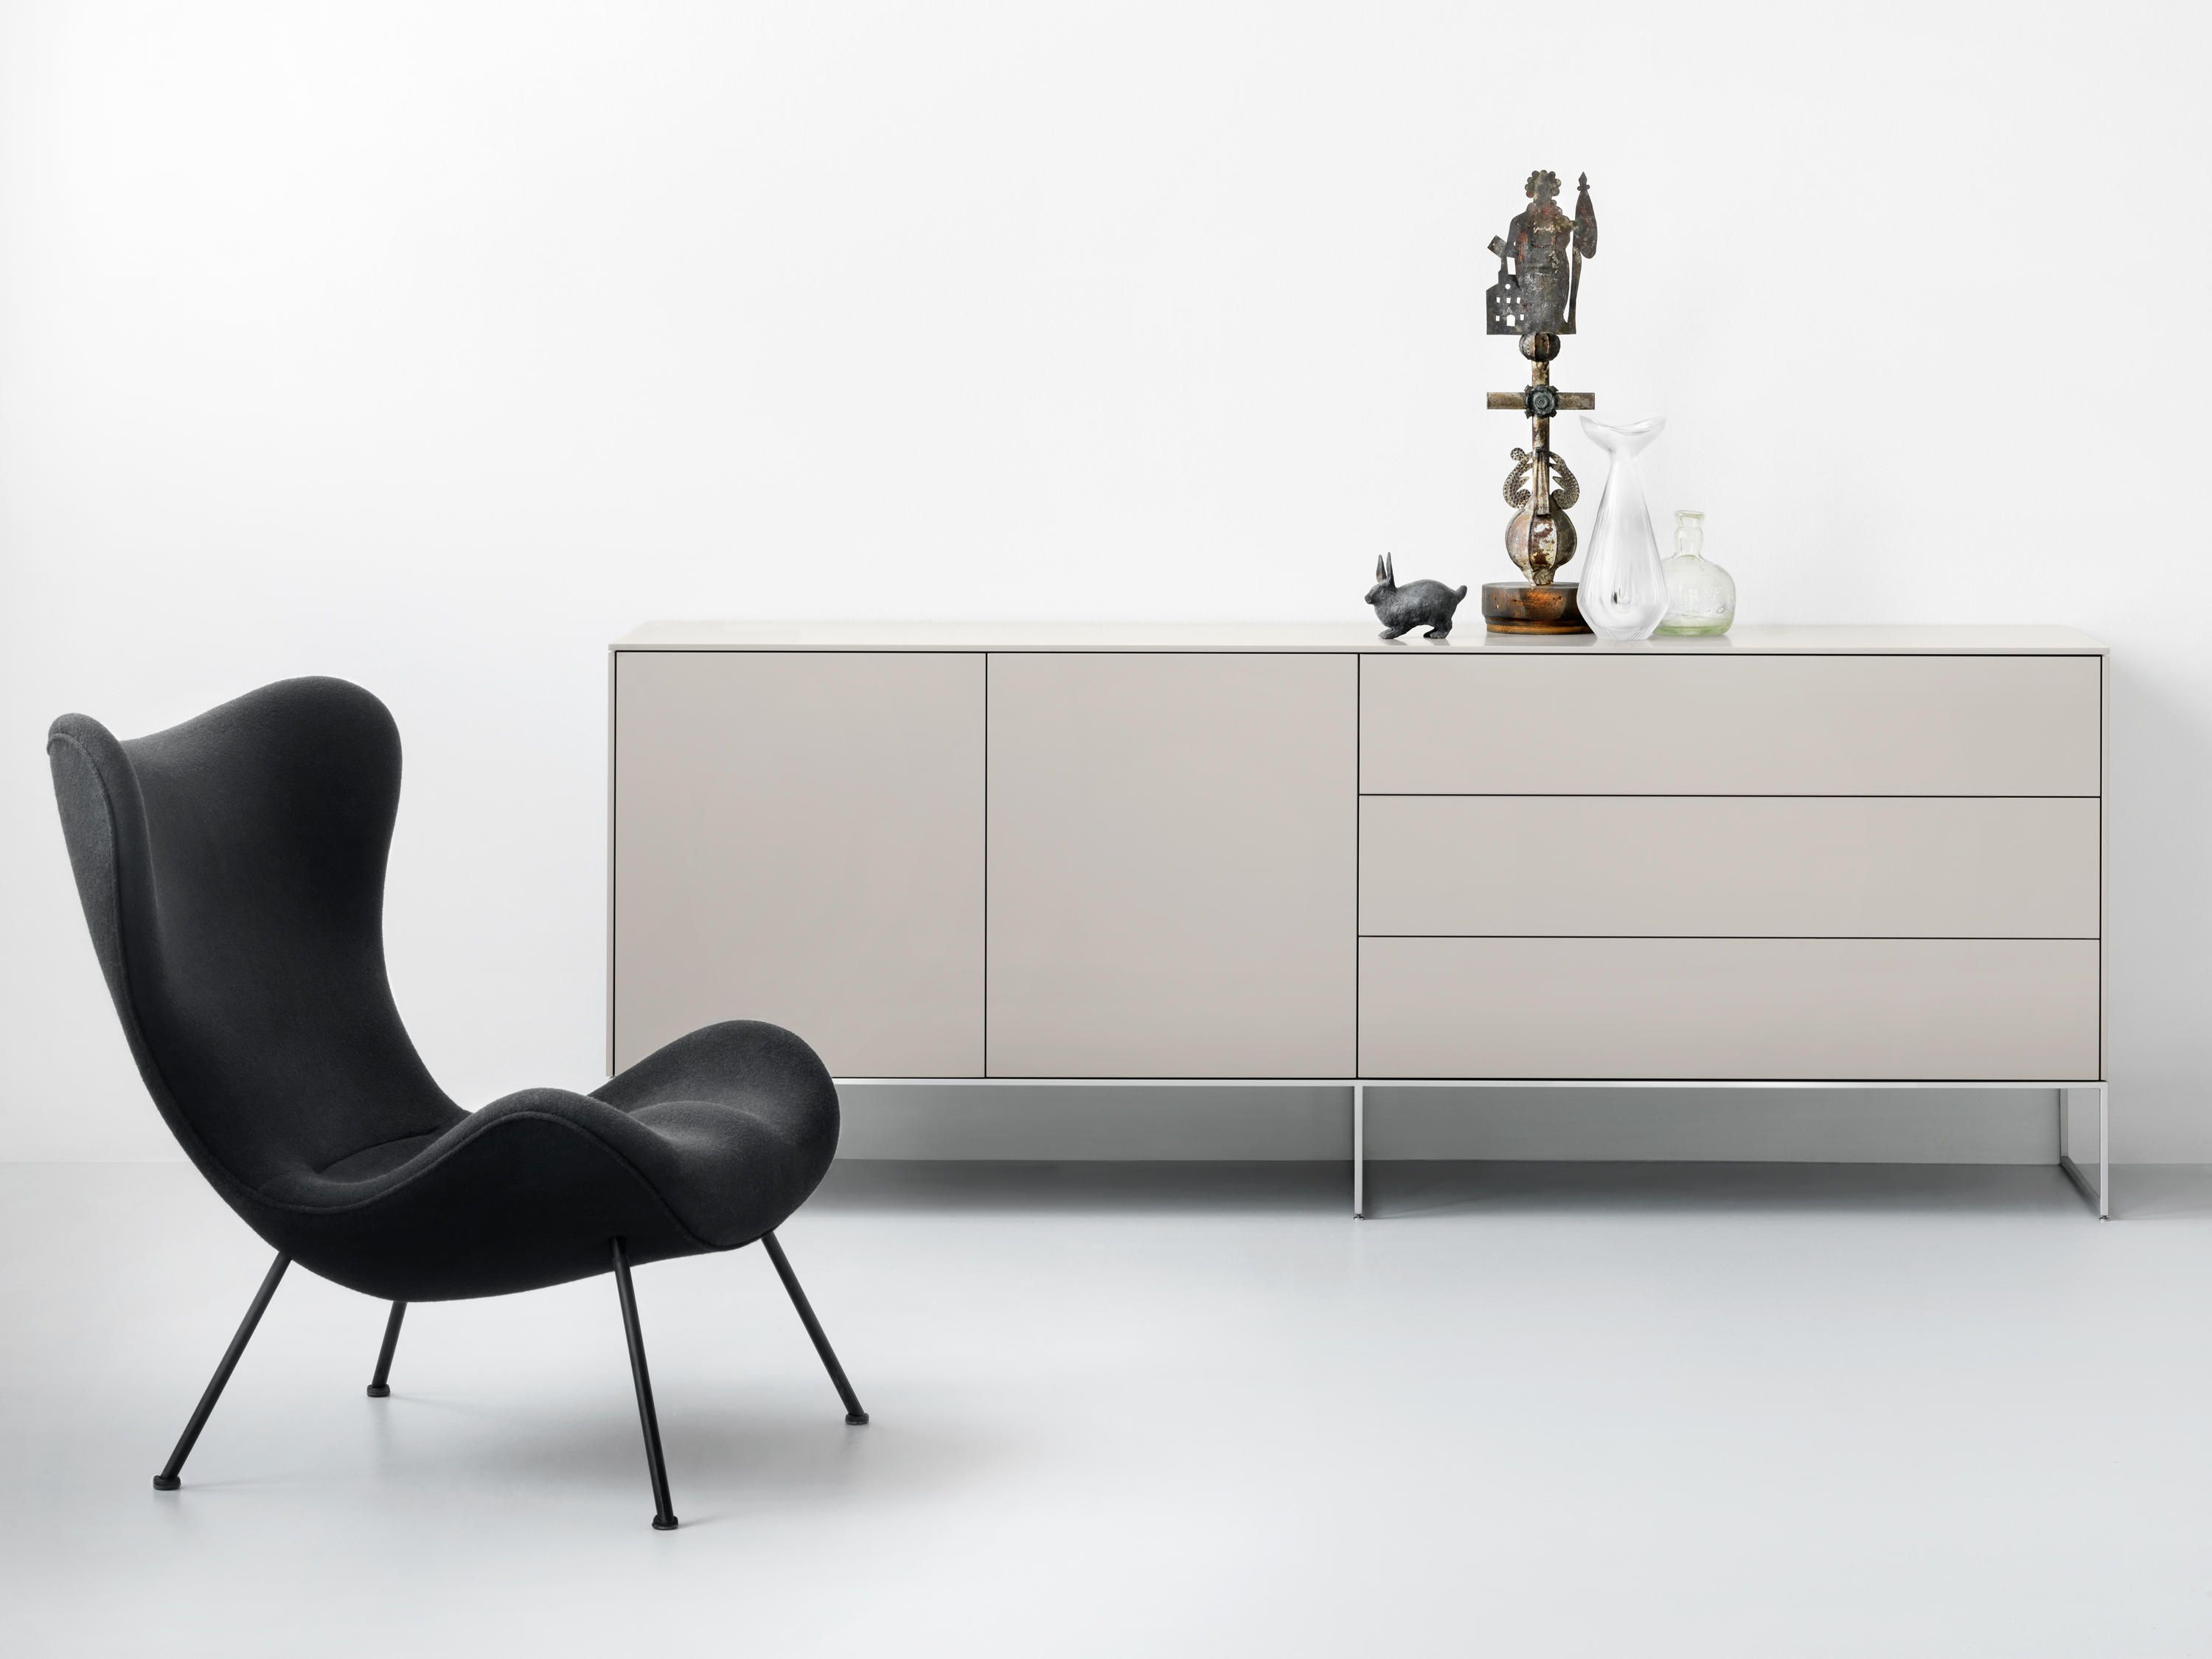 billig highboard 110 cm breit sideboard in 2019 highboard m bel und regal. Black Bedroom Furniture Sets. Home Design Ideas